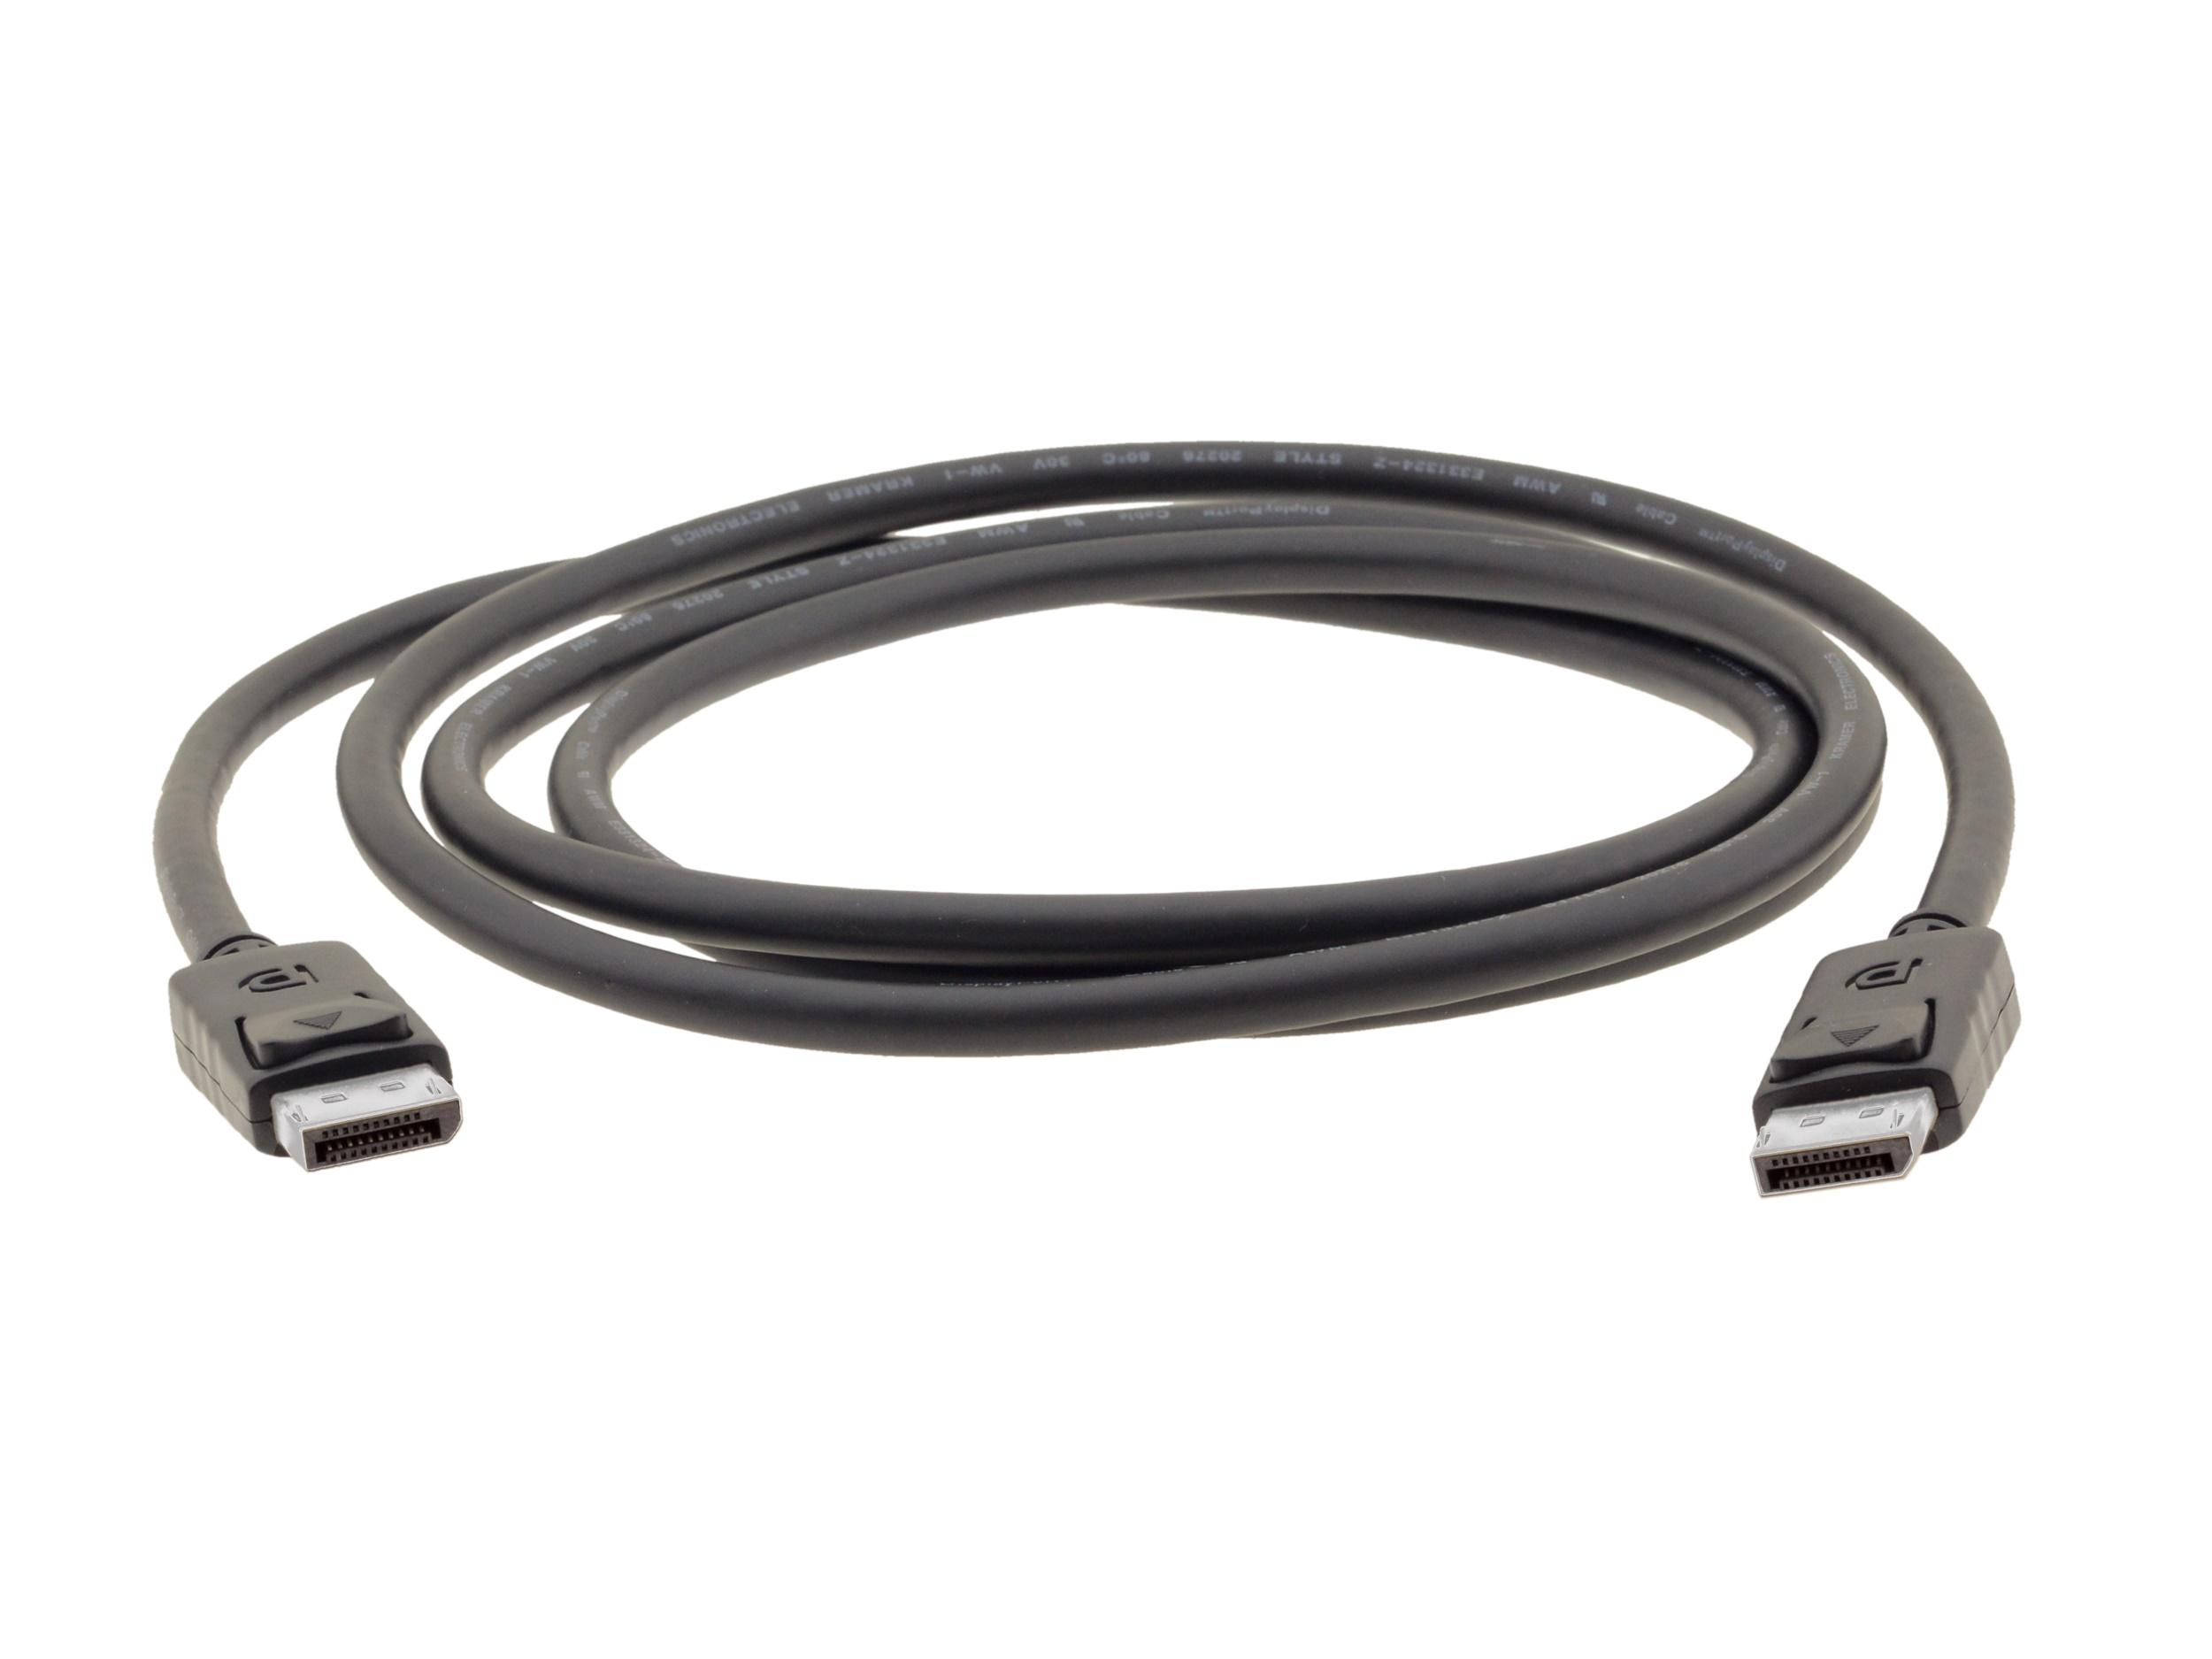 C-DP-35 35ft/10.7m DisplayPort (M) to DisplayPort (M) Cable by Kramer